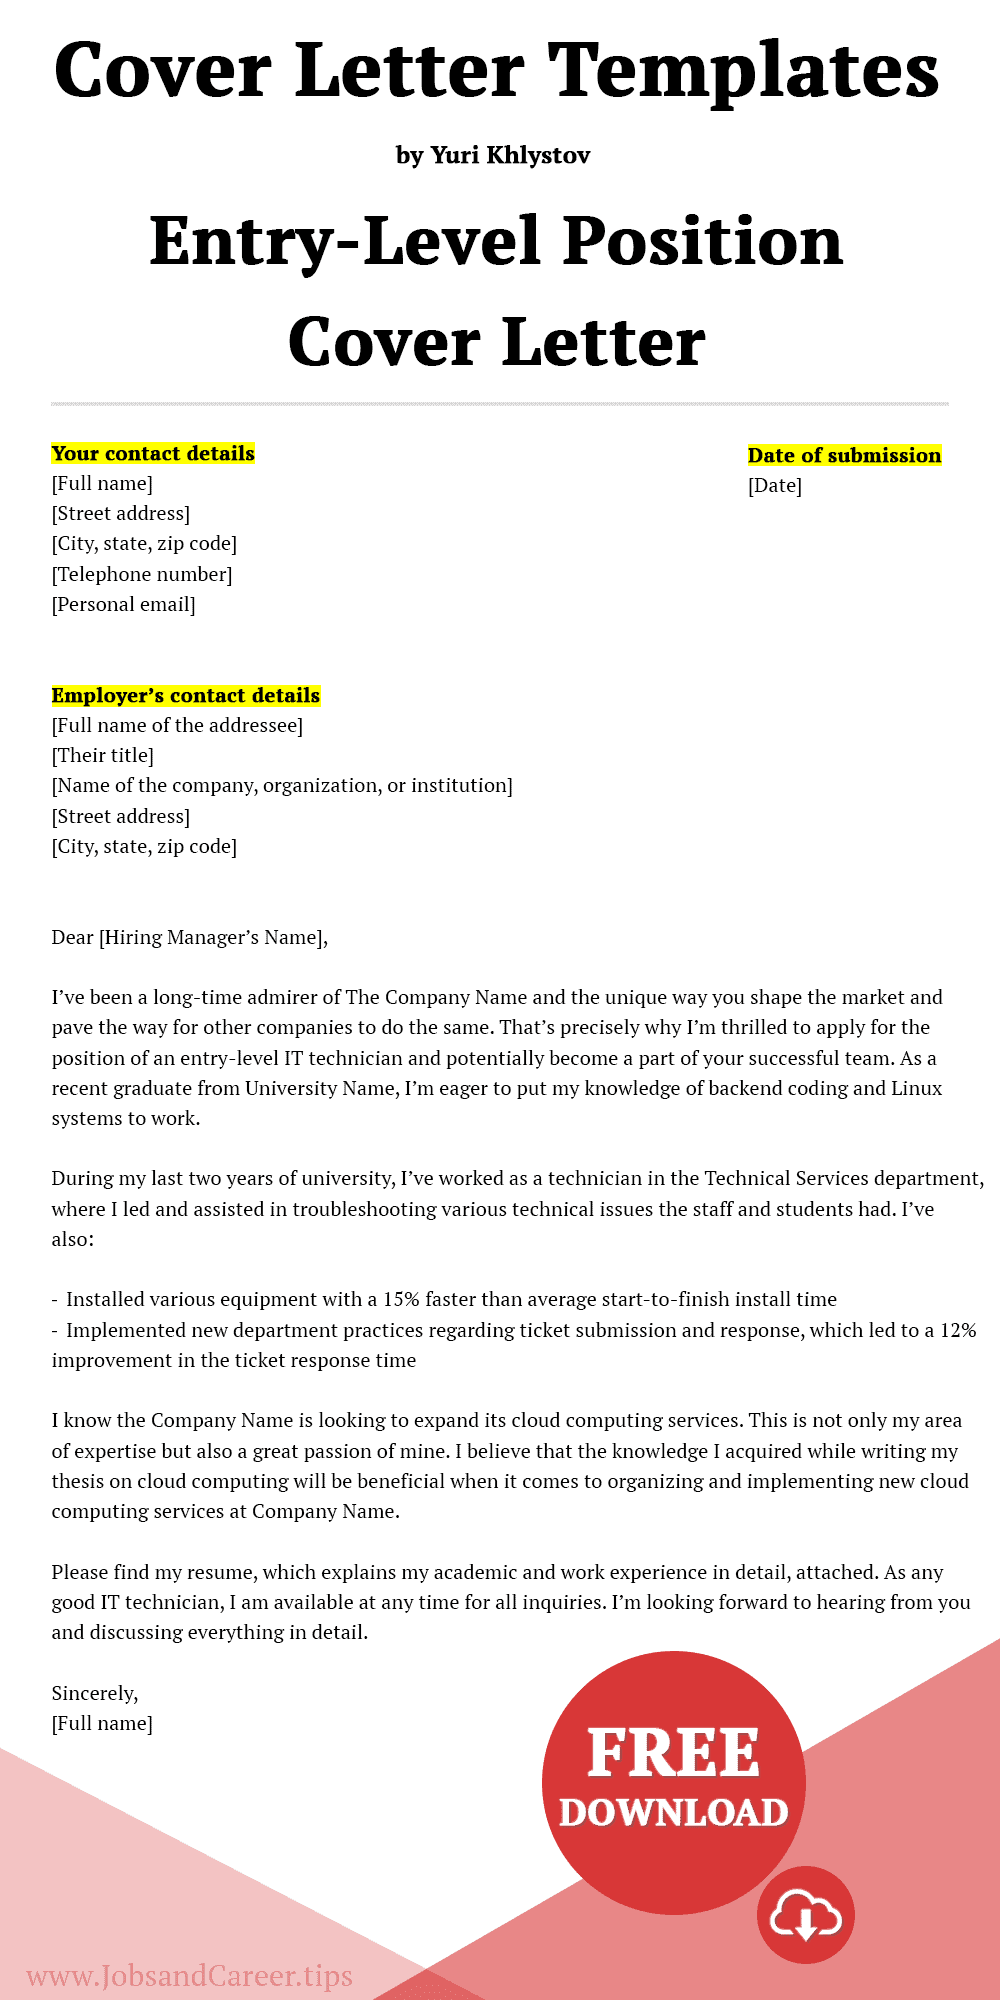 Click to download an entry-level position cover letter template